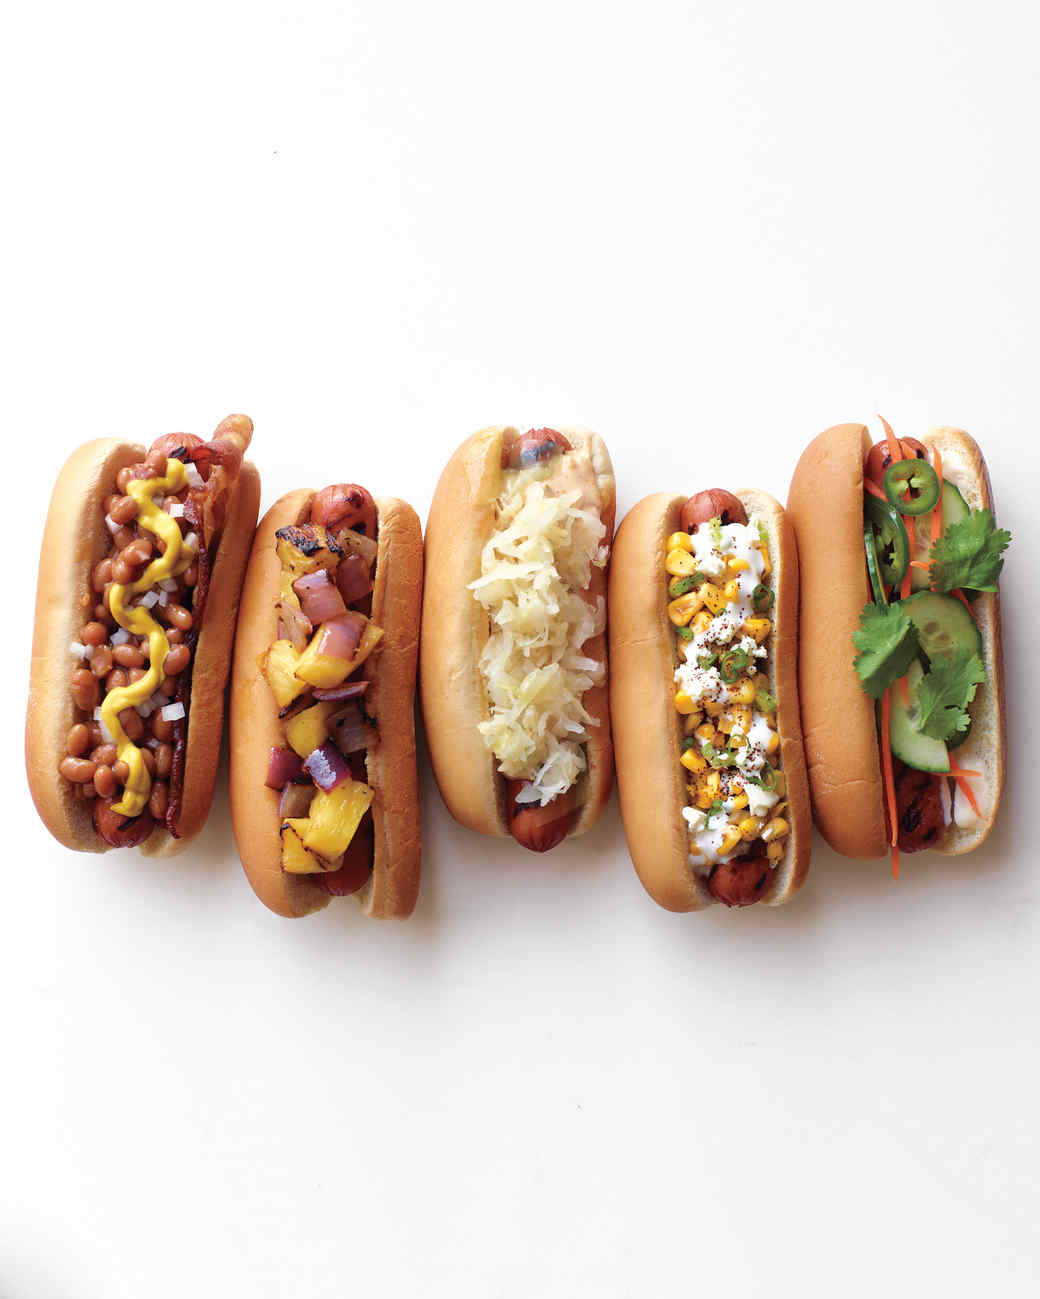 try a mexican charred corn dog hawaiian dog reuben dog and banh mi dog ...